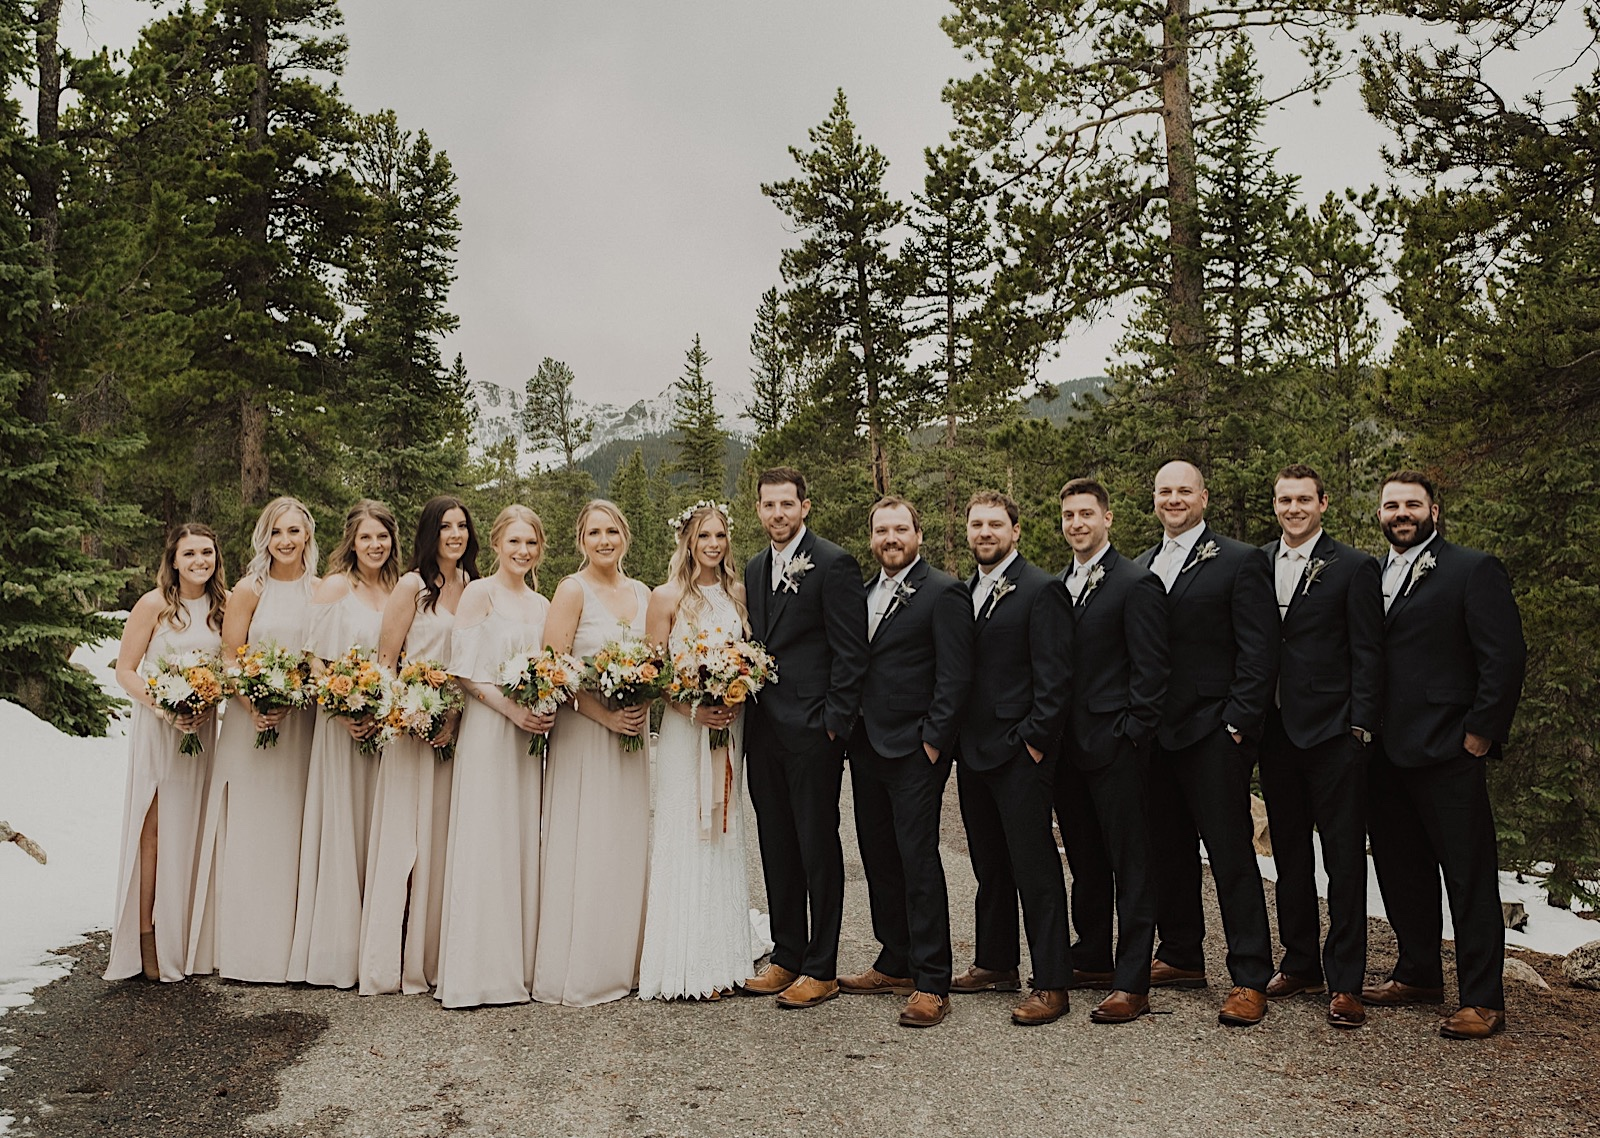 Blackstone Rivers Ranch Wedding, Colorado Wedding Photographer, Colorado Elopement Photographer, Colorado Mountain Wedding, Colorado Wedding Ideas, Colorado Wedding Inspiration, Destination Wedding in Colorado, Places to Elope in Colorado, Places to get married in Colorado, Boho Wedding Inspiration, Wedding Photography, Wedding ideas, Wedding Inspiration, Bridal Party Photos, Wedding party photos, groomsmen posing, groomsmen photos, bridesmaids dresses, bridesmaids photos